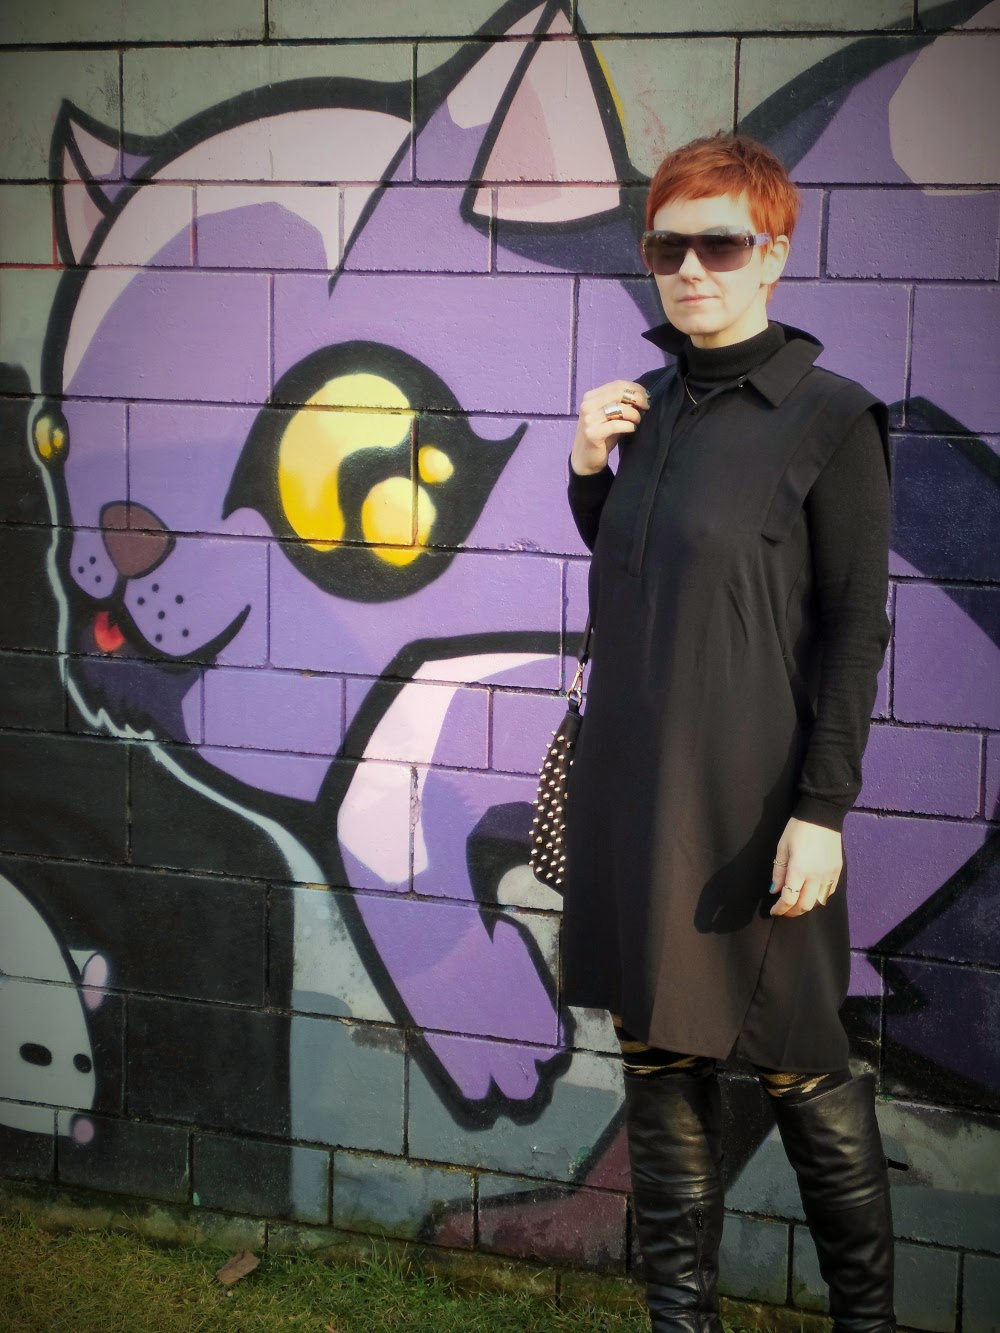 Ralph Lauren visor sunglasses, black shirt dress, black turtleneck, black over-the-boots, black gold foil leggins, graffiti wall